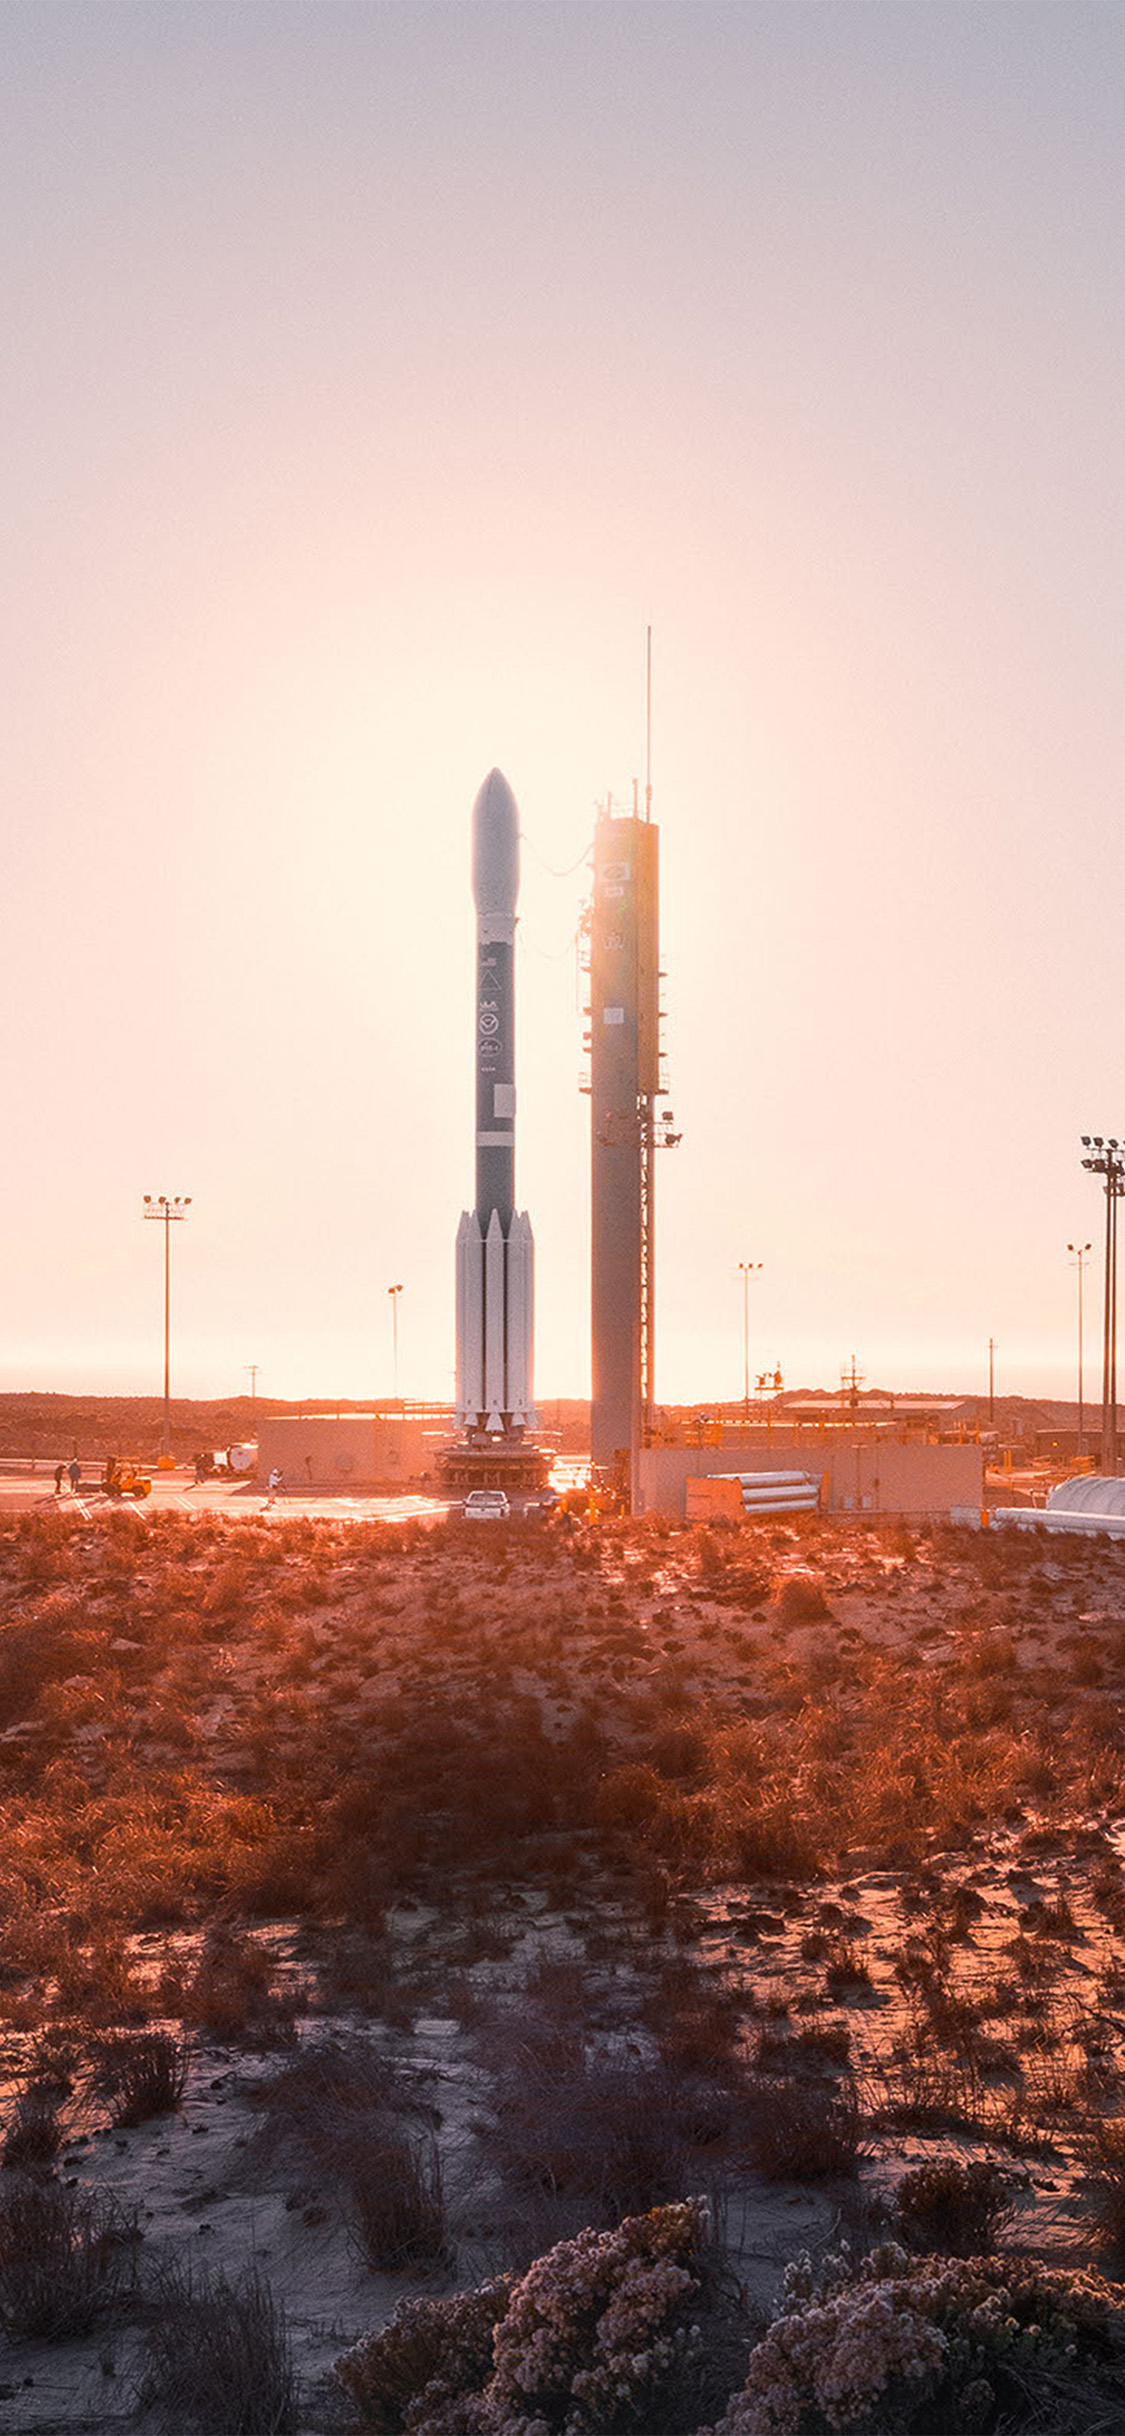 iPhonexpapers.com-Apple-iPhone-wallpaper-nz62-missile-rocket-nasa-landscape-nature